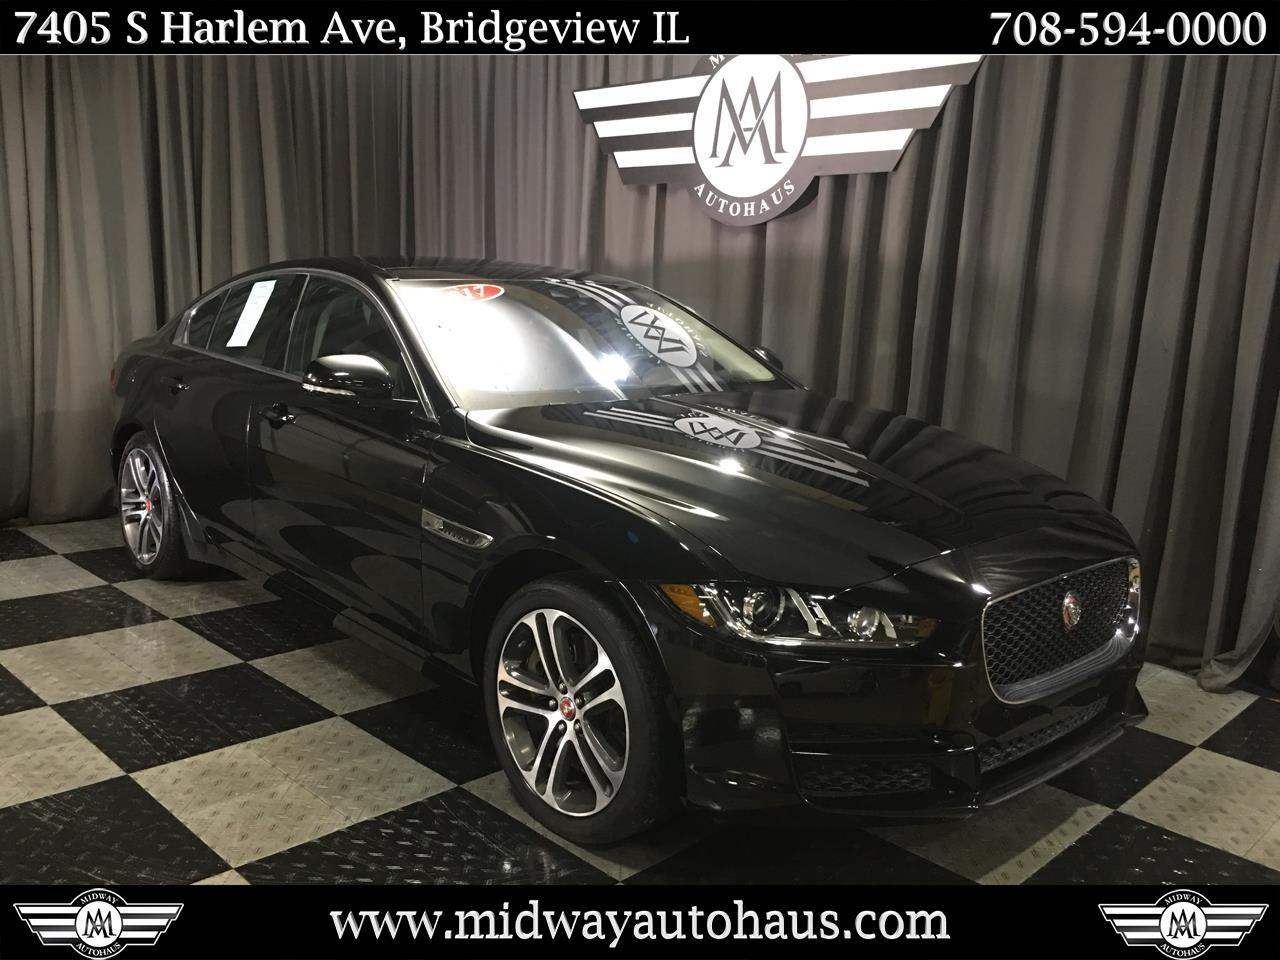 Used Cars For Sale in Bridgeview   Midway Autohaus